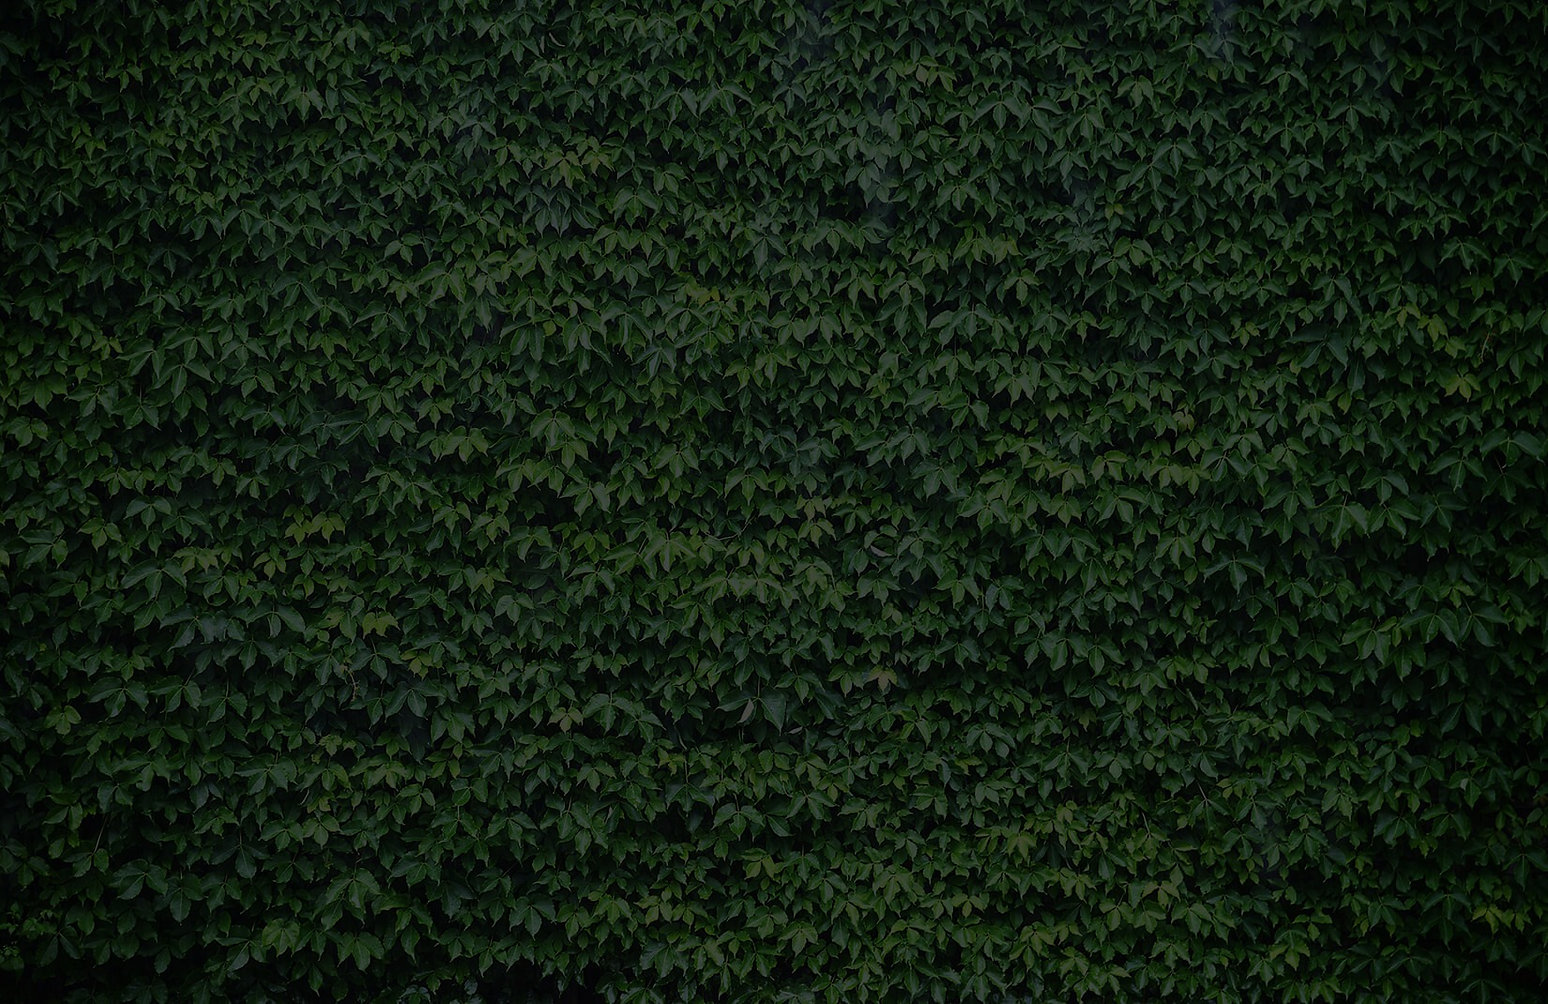 wall-of-green-ivy-texture-plain_edited.j